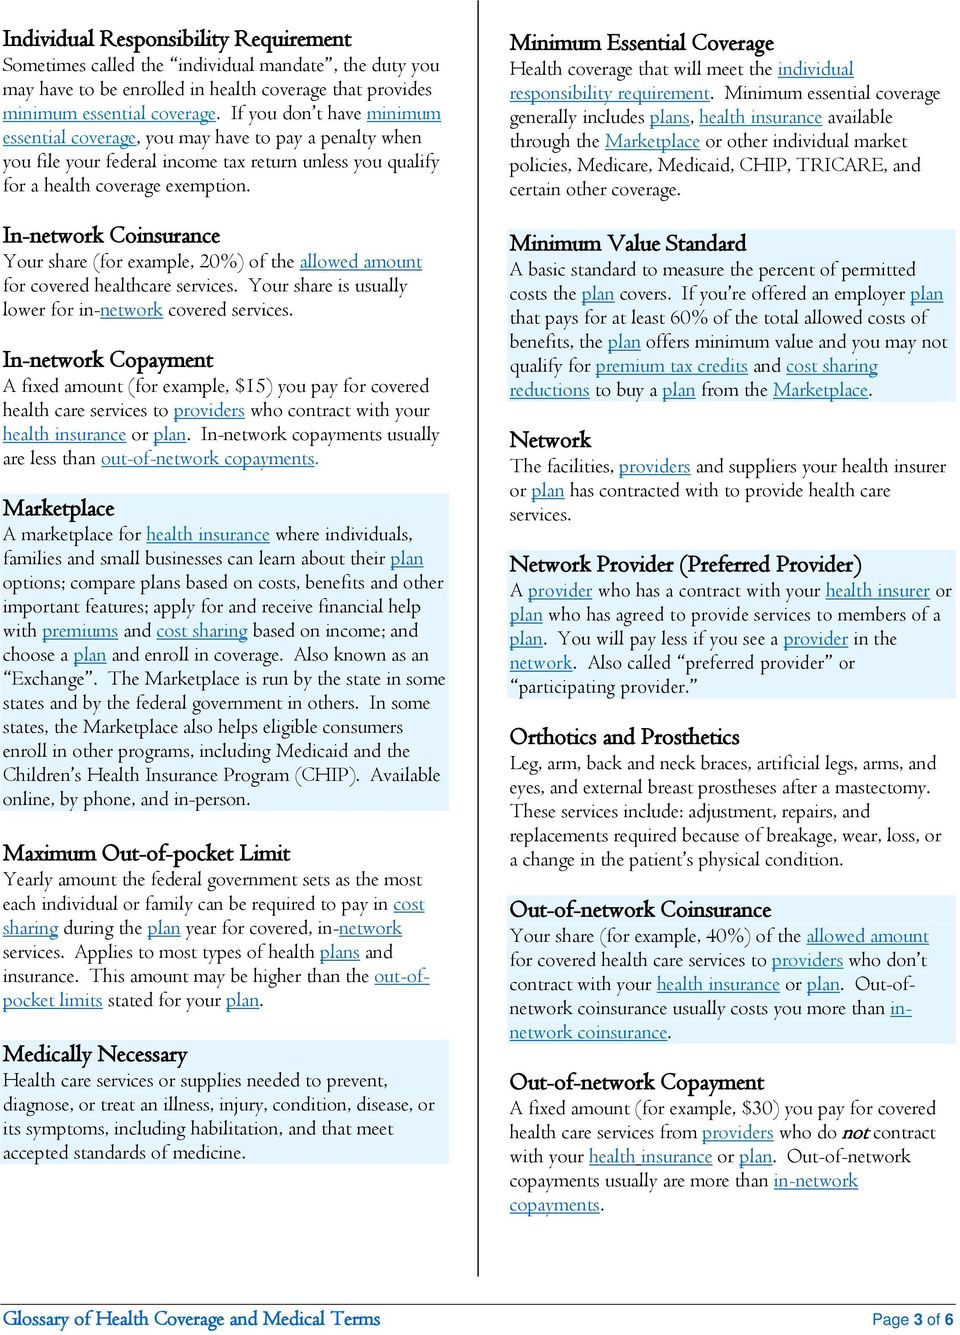 Glossary of Health Coverage and Medical Terms - PDF